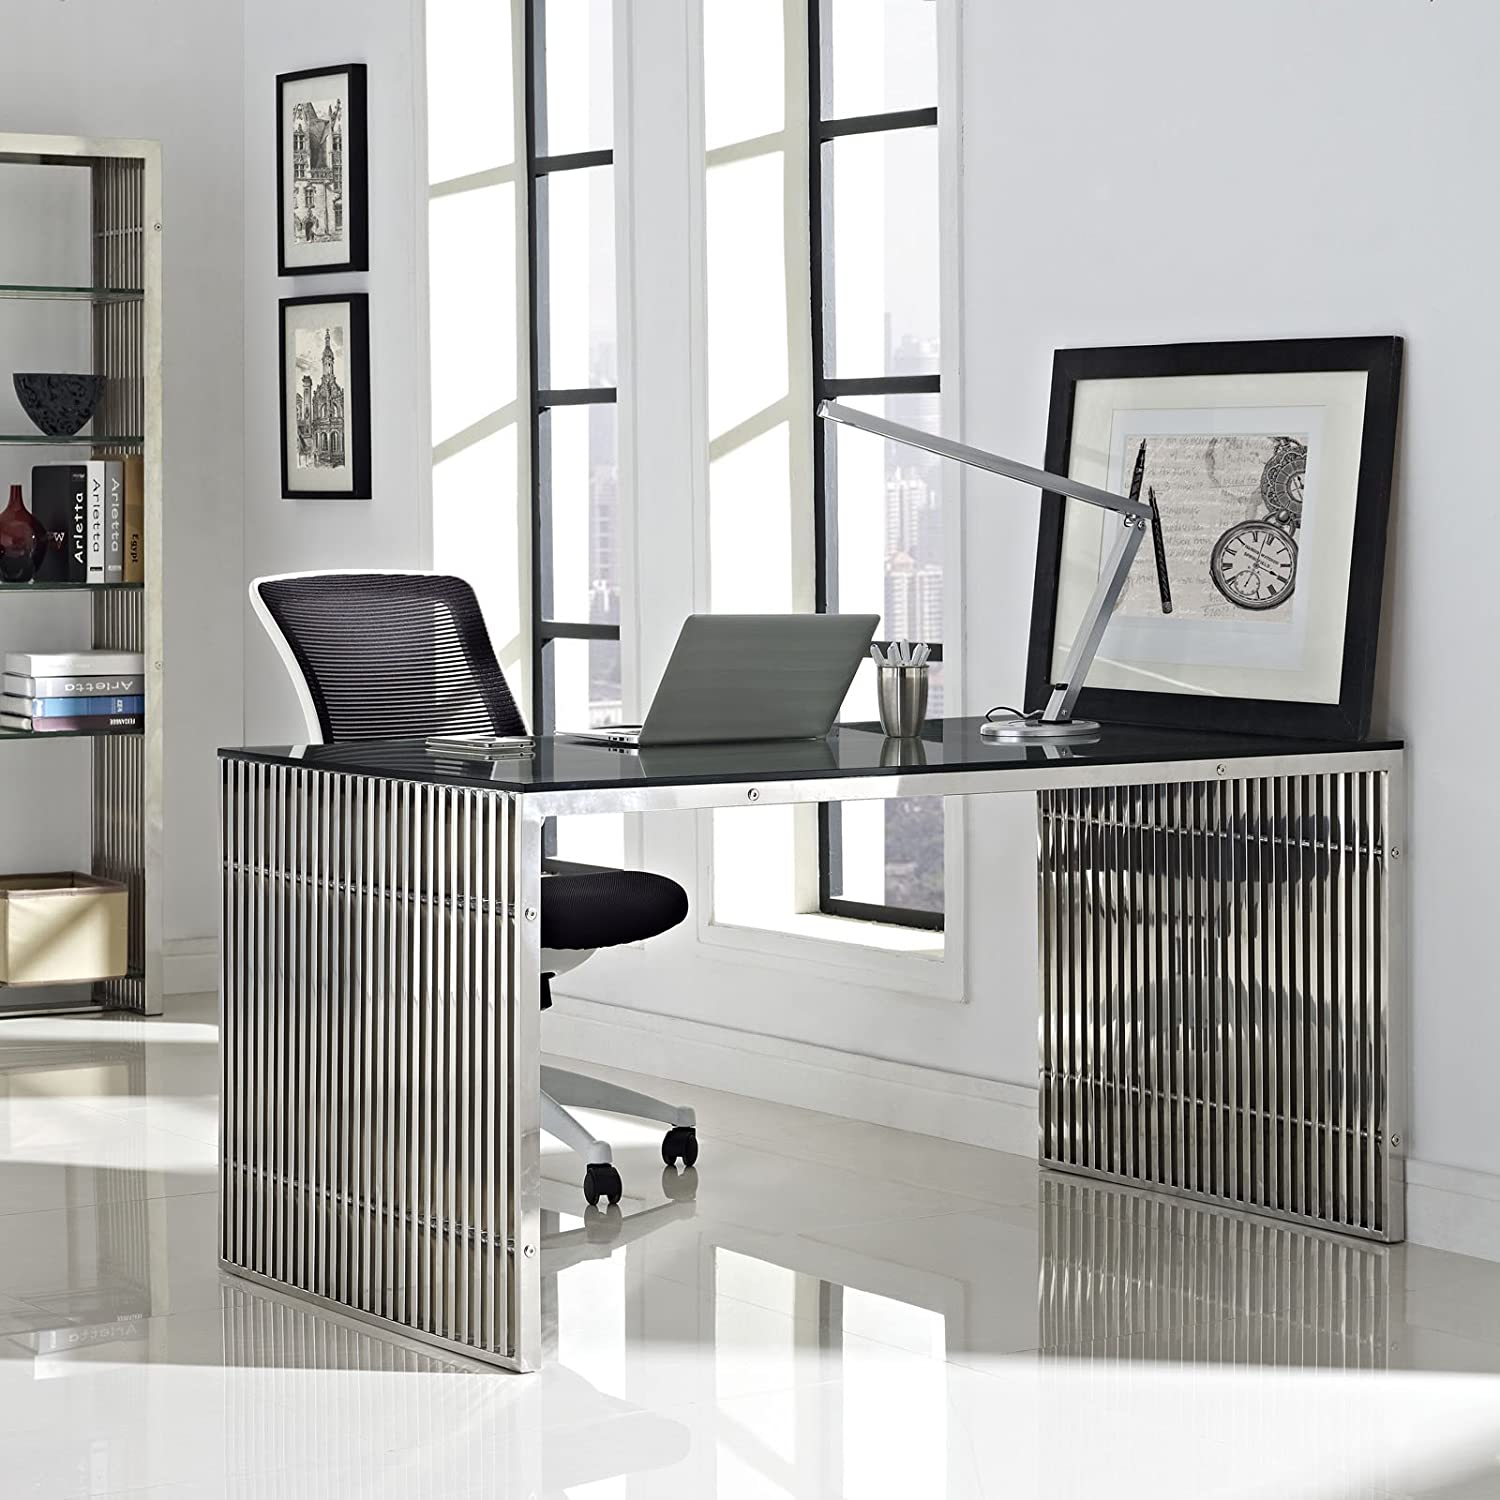 Amazon.com: Modway Gridiron Stainless Steel Dining Table In Silver: Kitchen  U0026 Dining